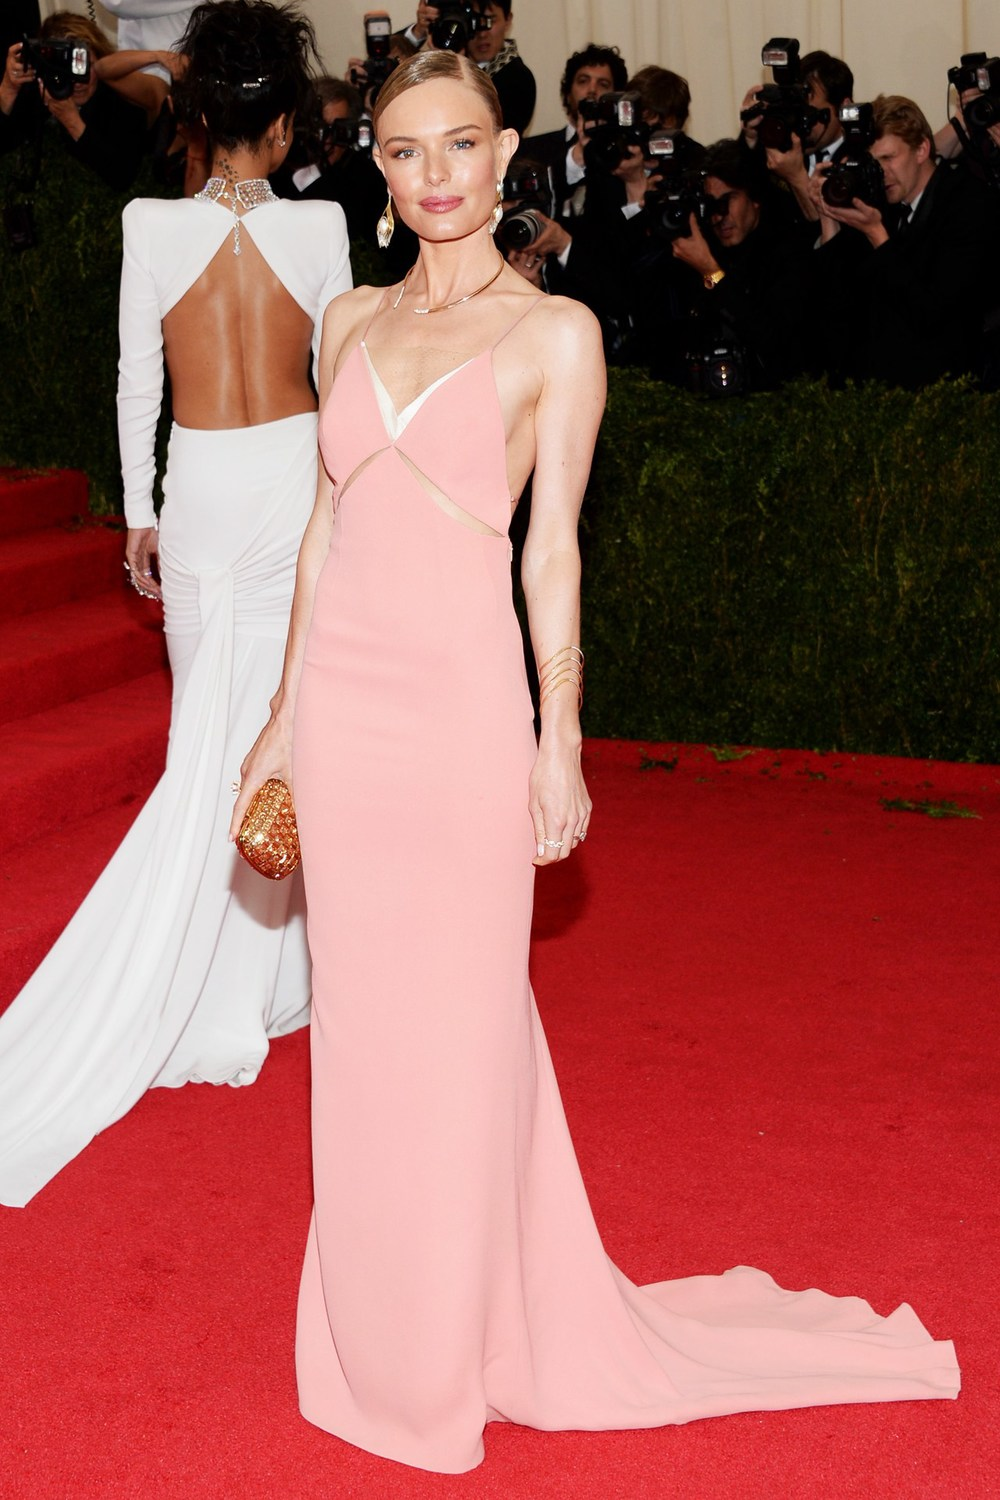 Kate Bosworth looking stunning in a dress by Stella McCartney